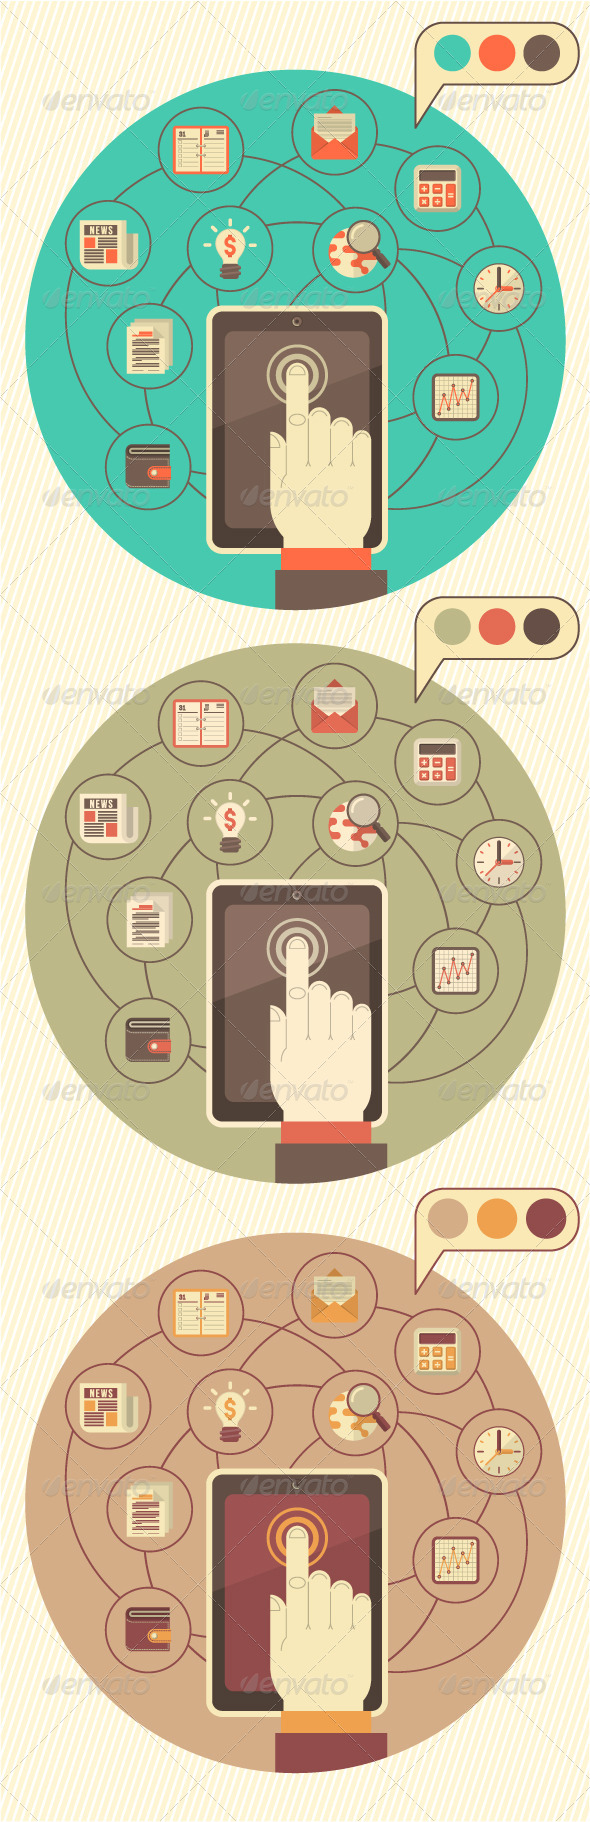 Tablet as a Tool for Business - Concepts Business